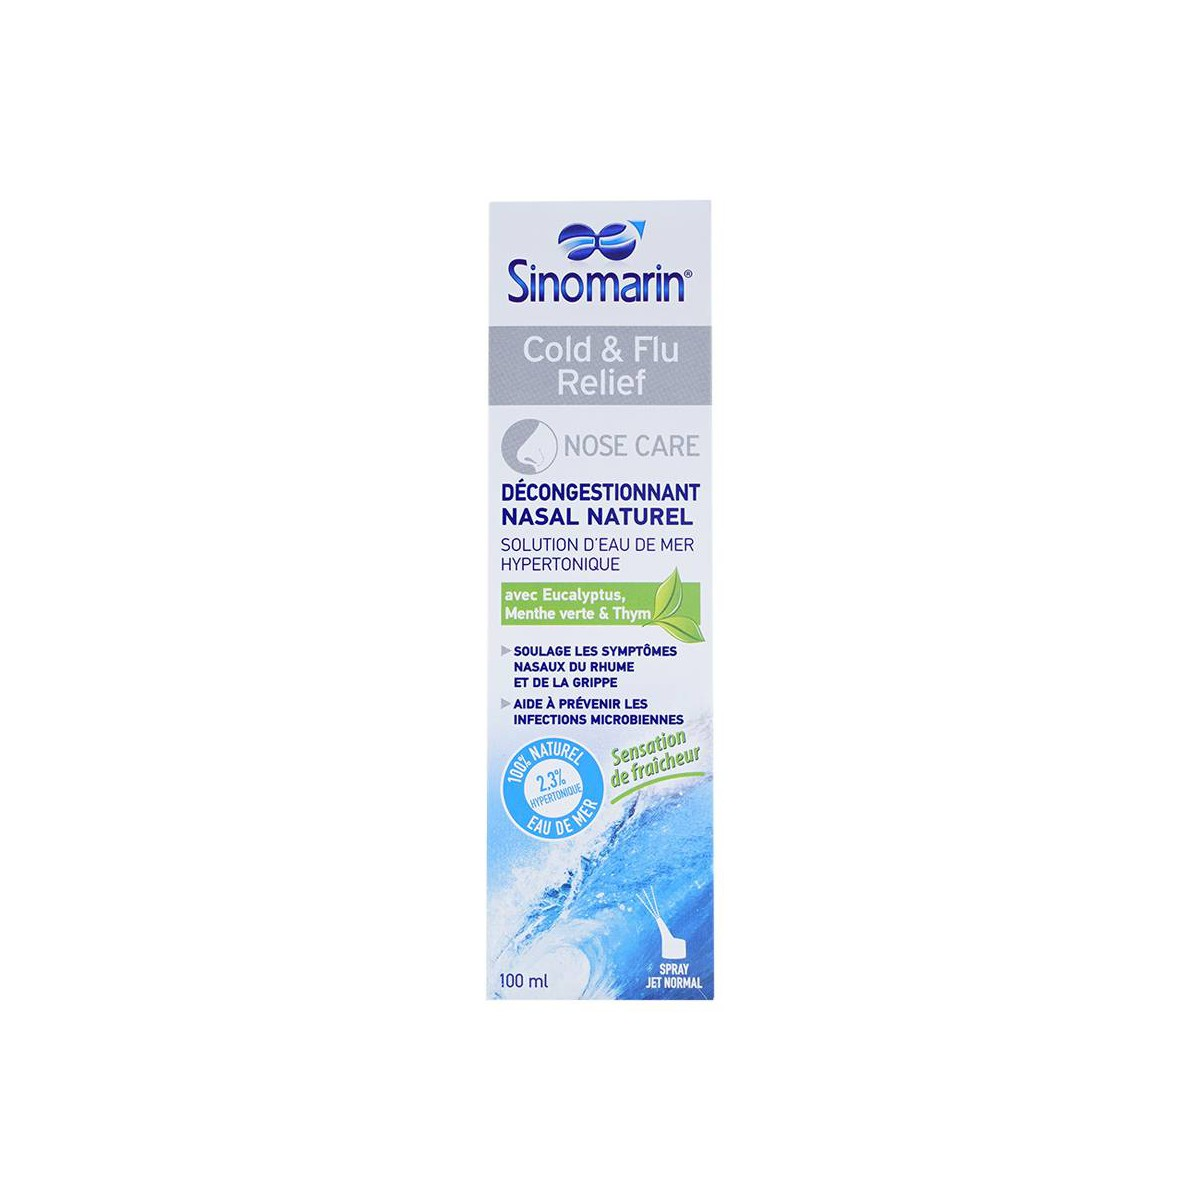 Sinomarin Cold & Flu Relief 100Ml